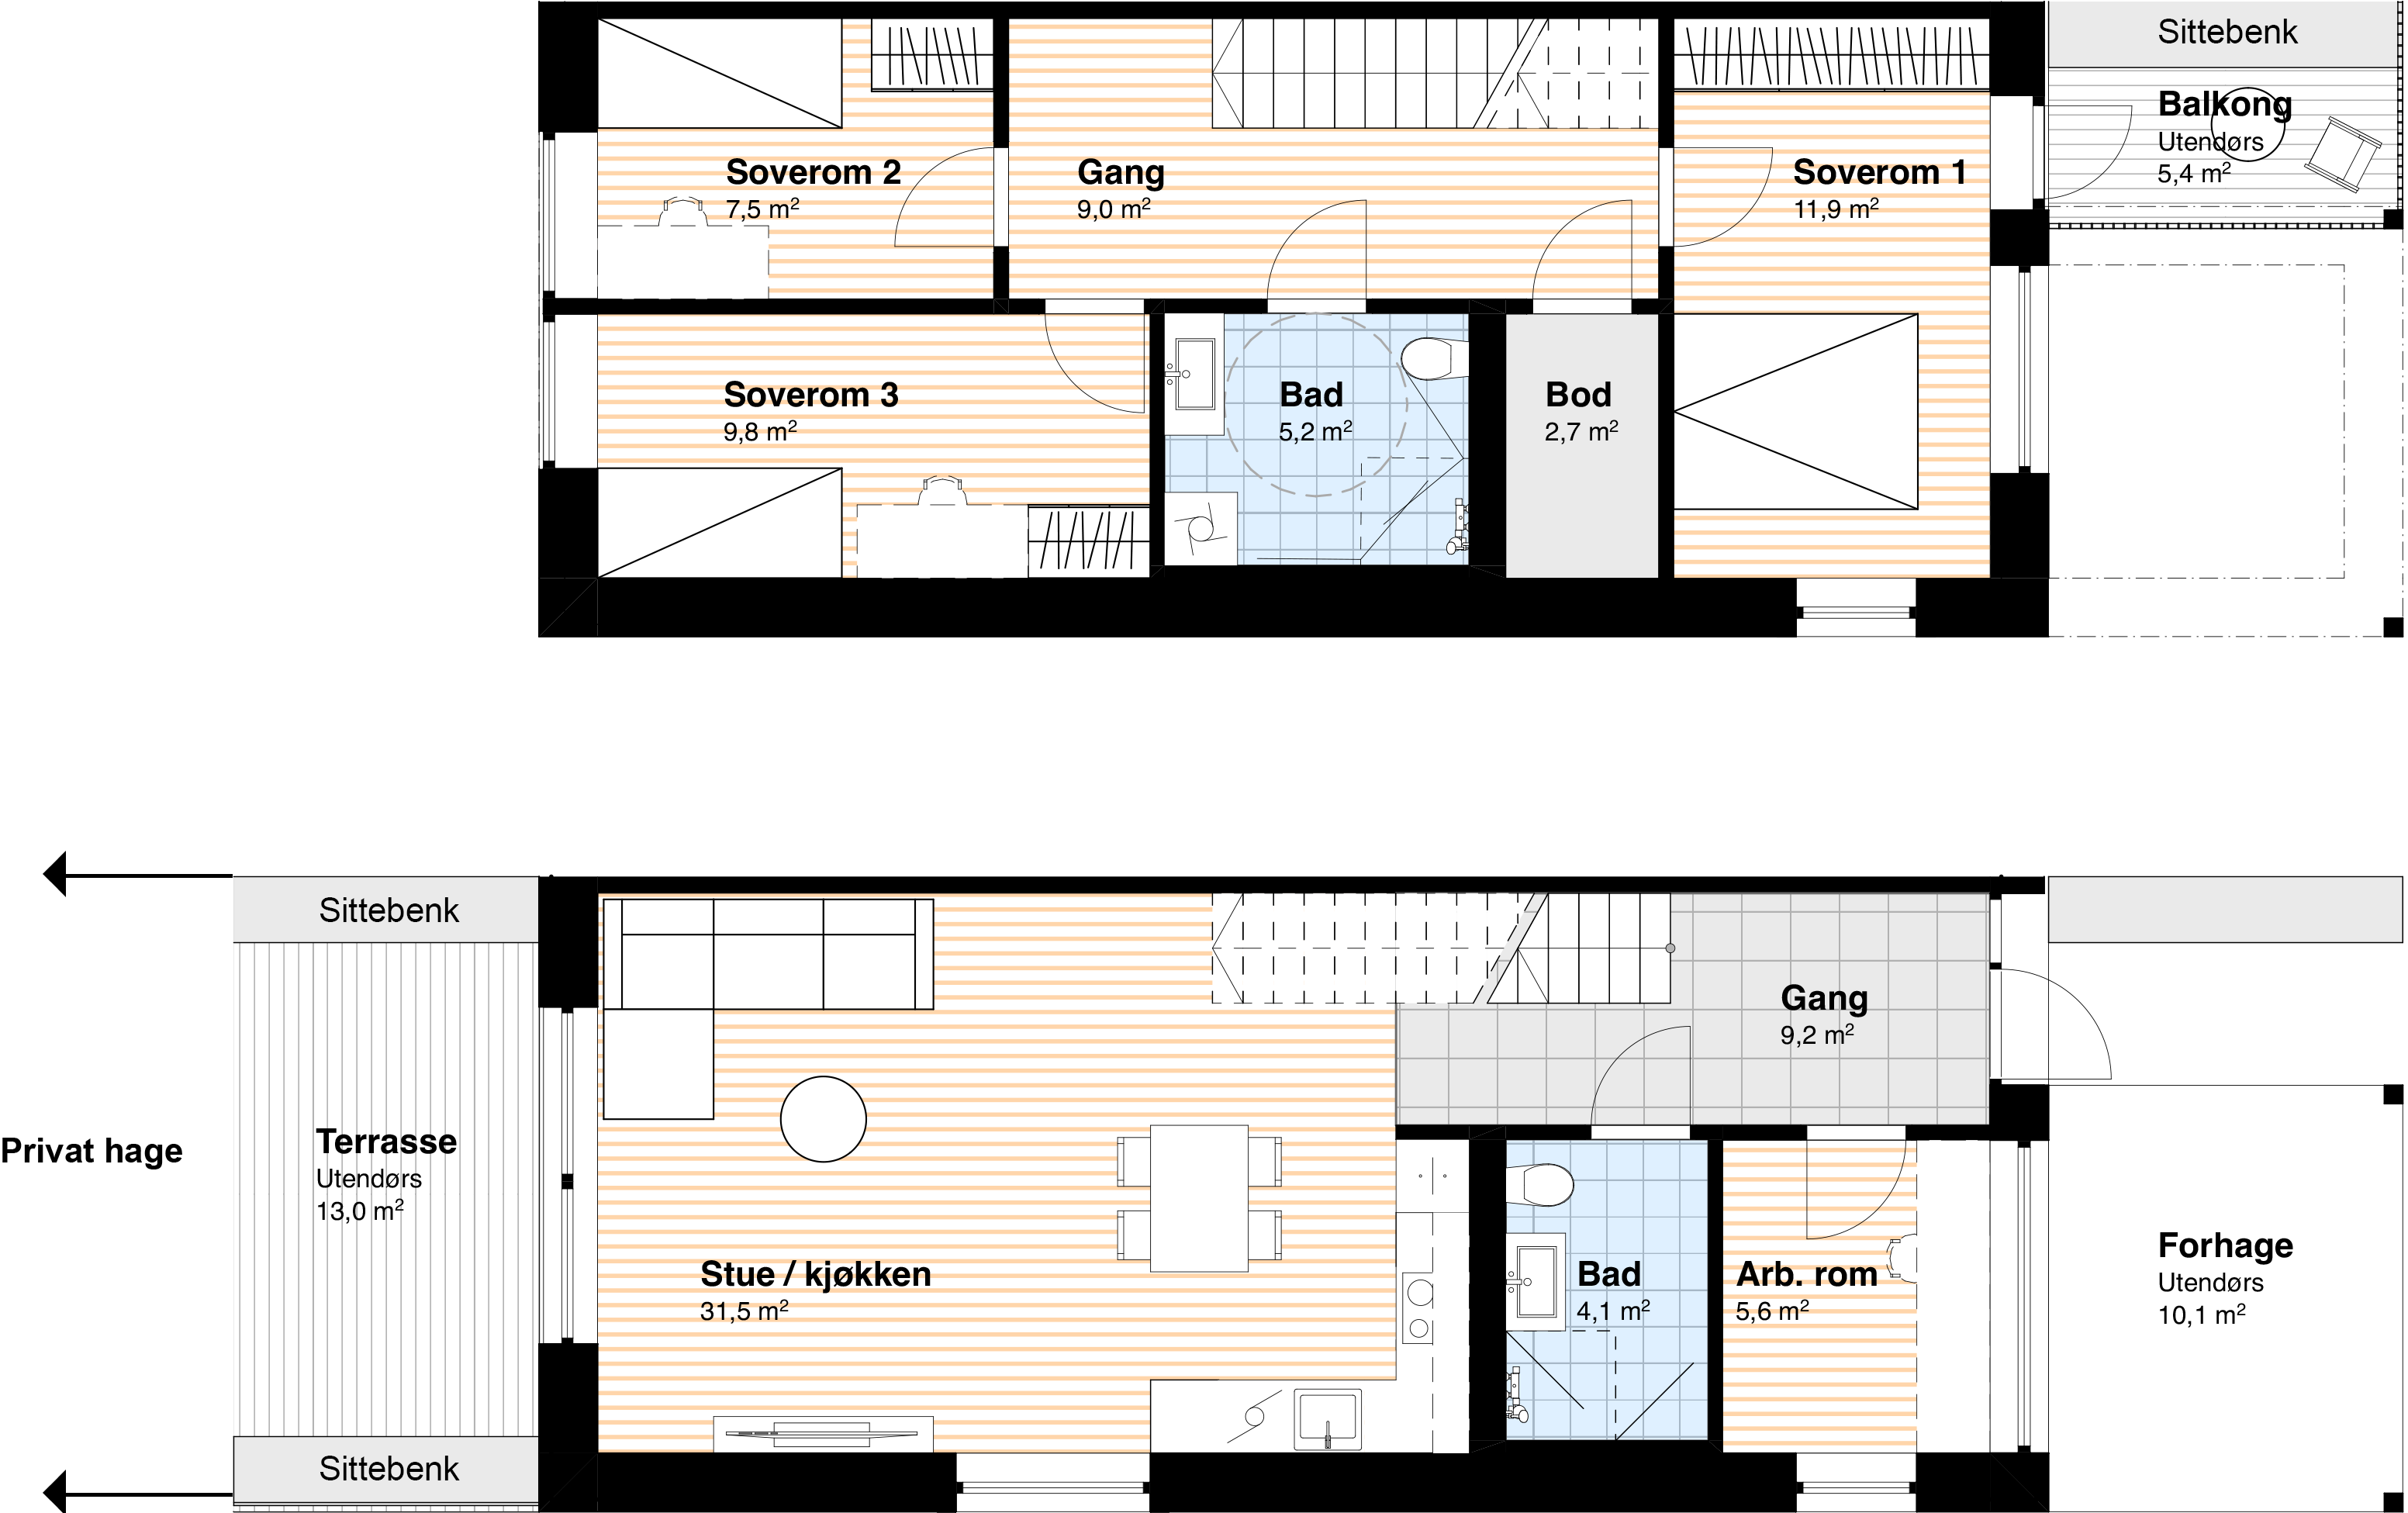 Townhouse - A101 - 110-1